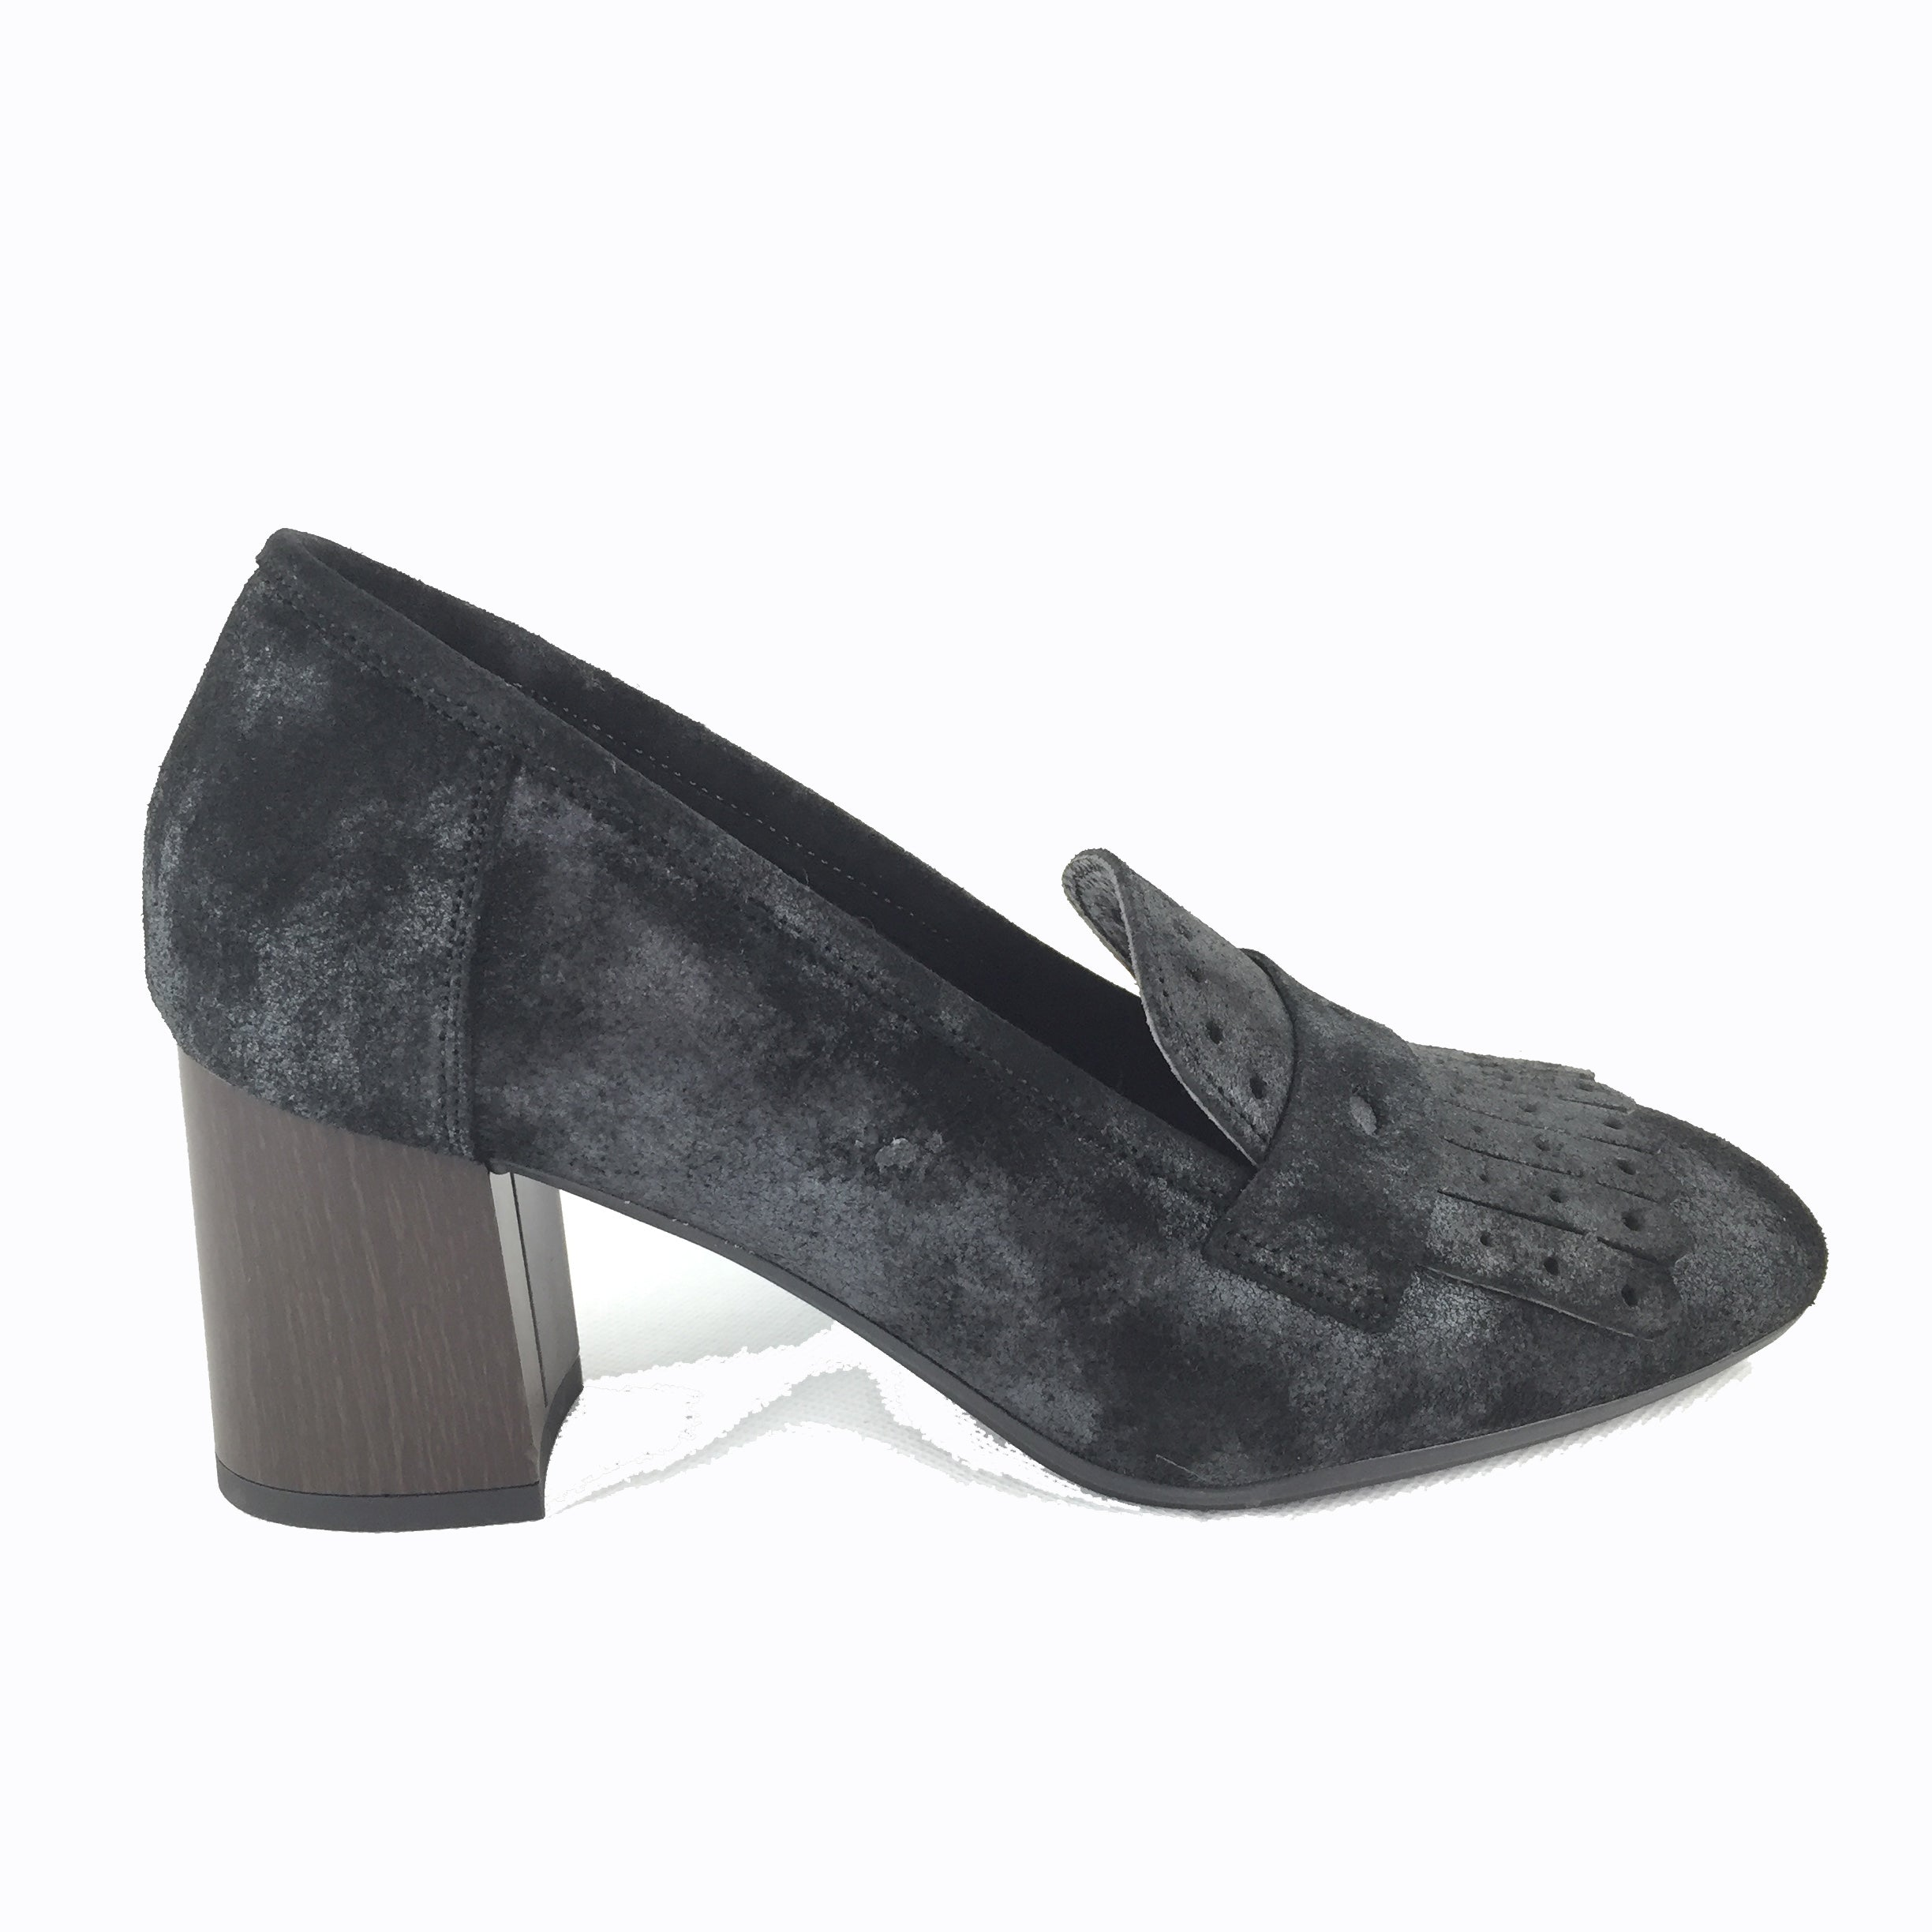 Cherrypic Black Suede Heeled Loafer Cherrypic